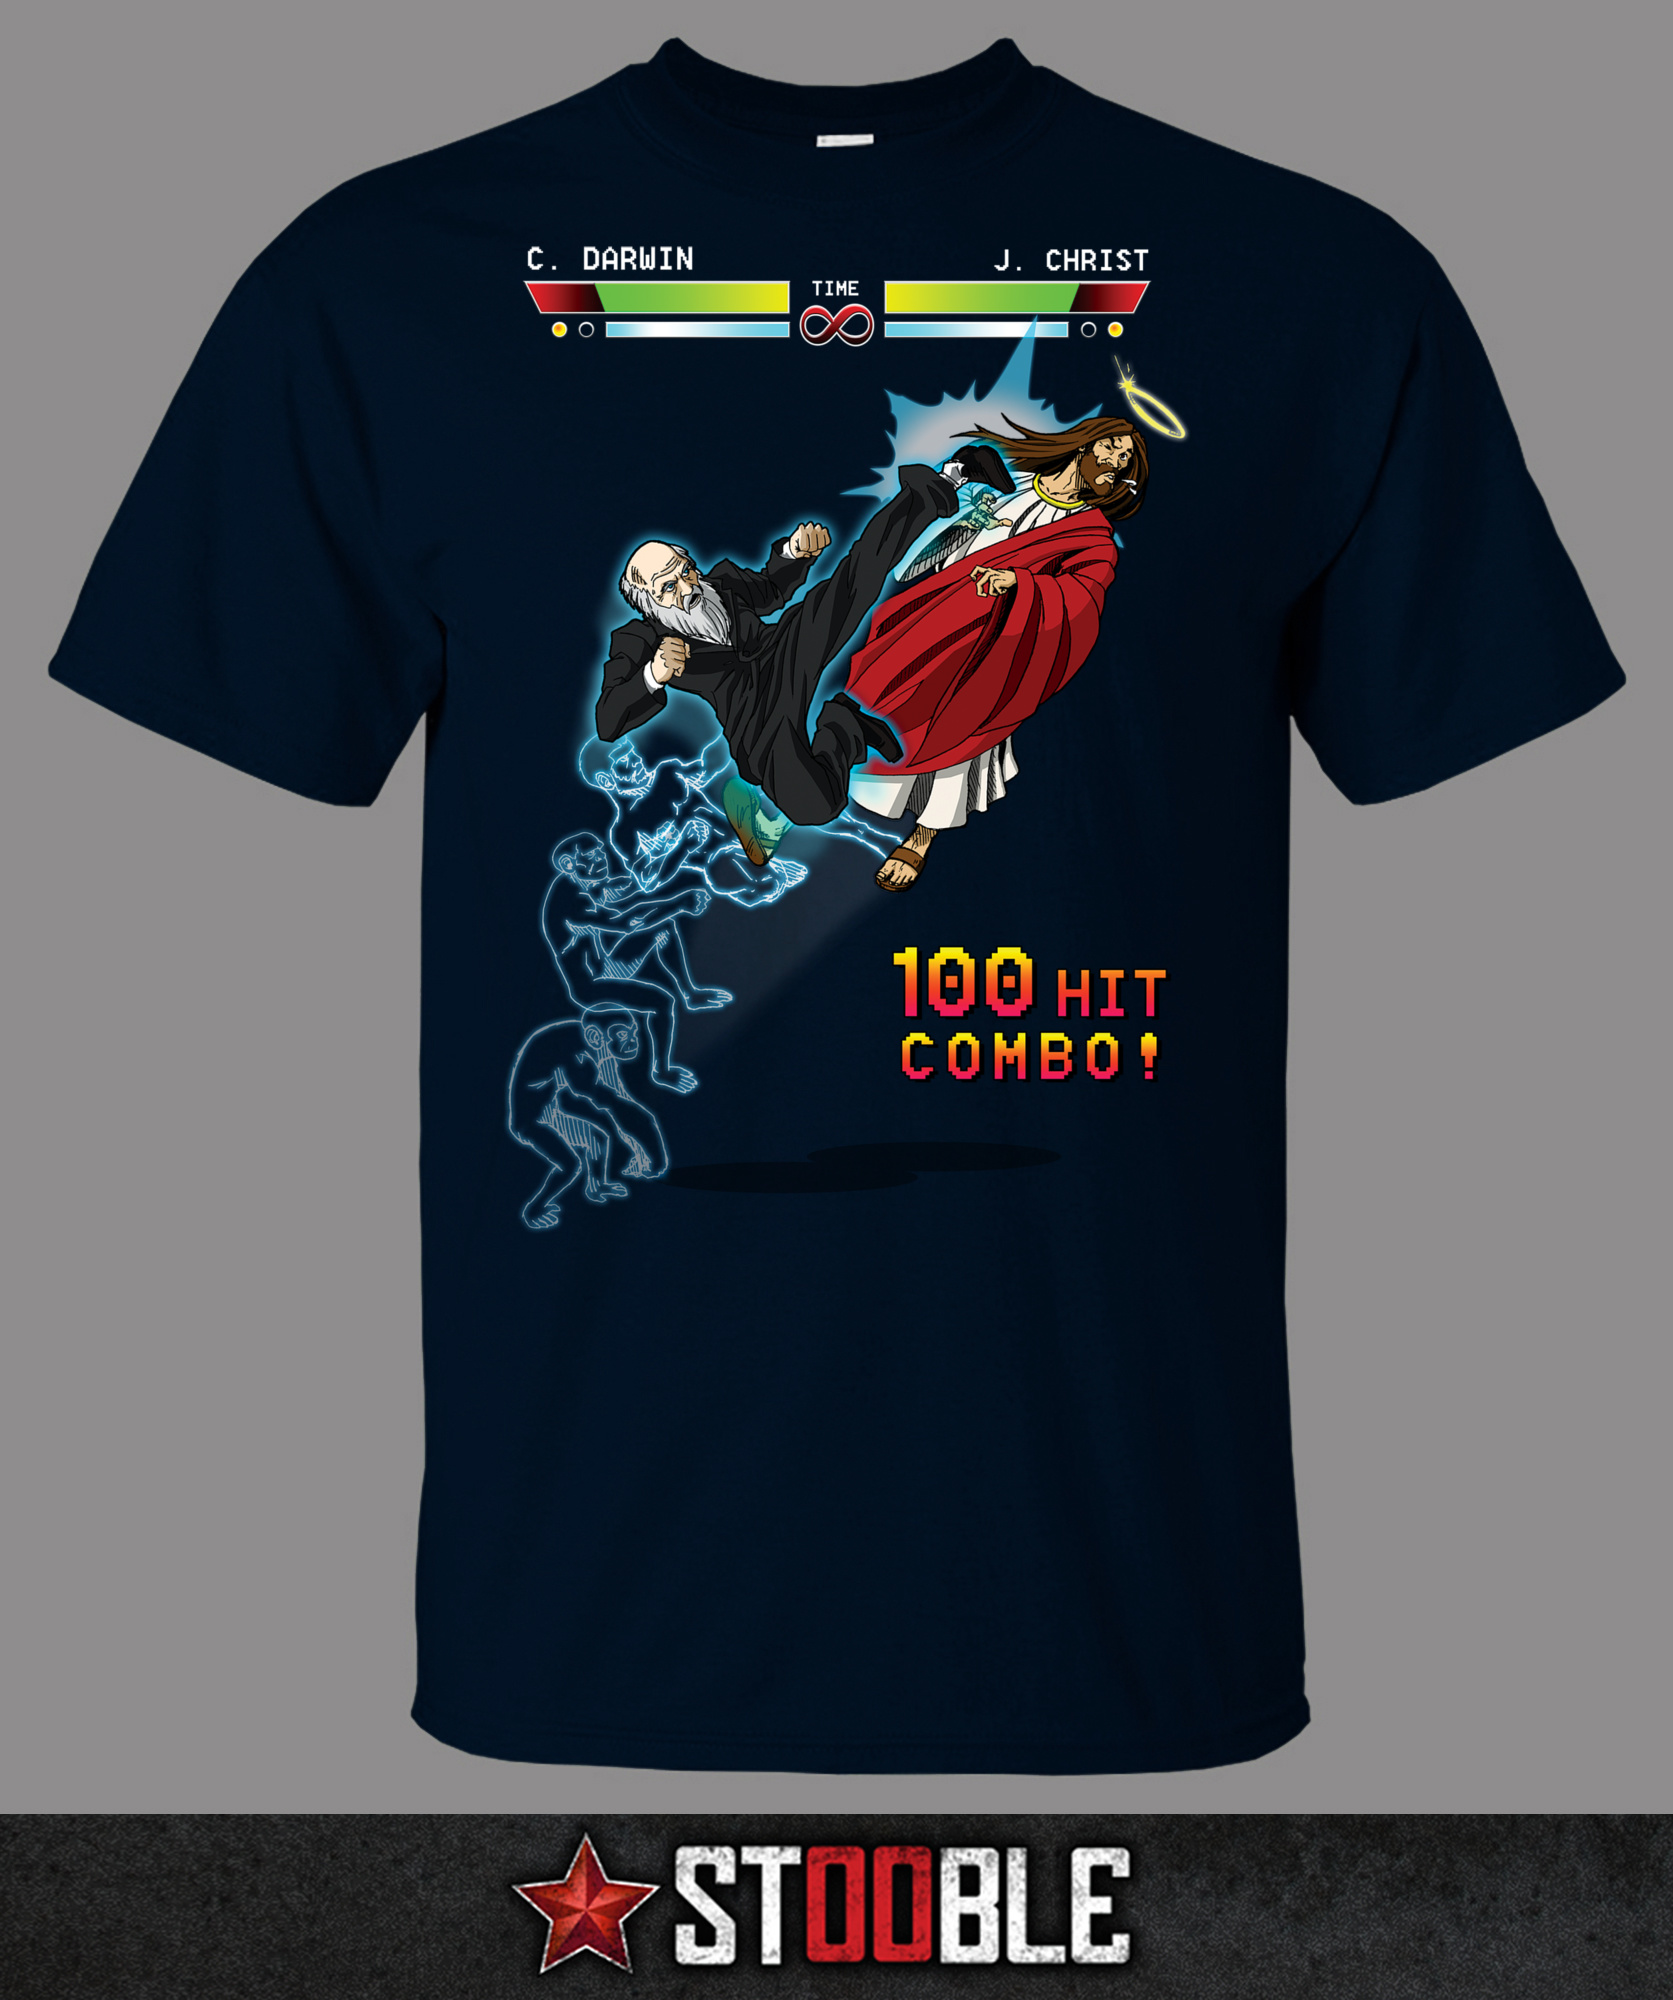 Jesus vs Darwin T-Shirt - New - Direct from Manufacturer